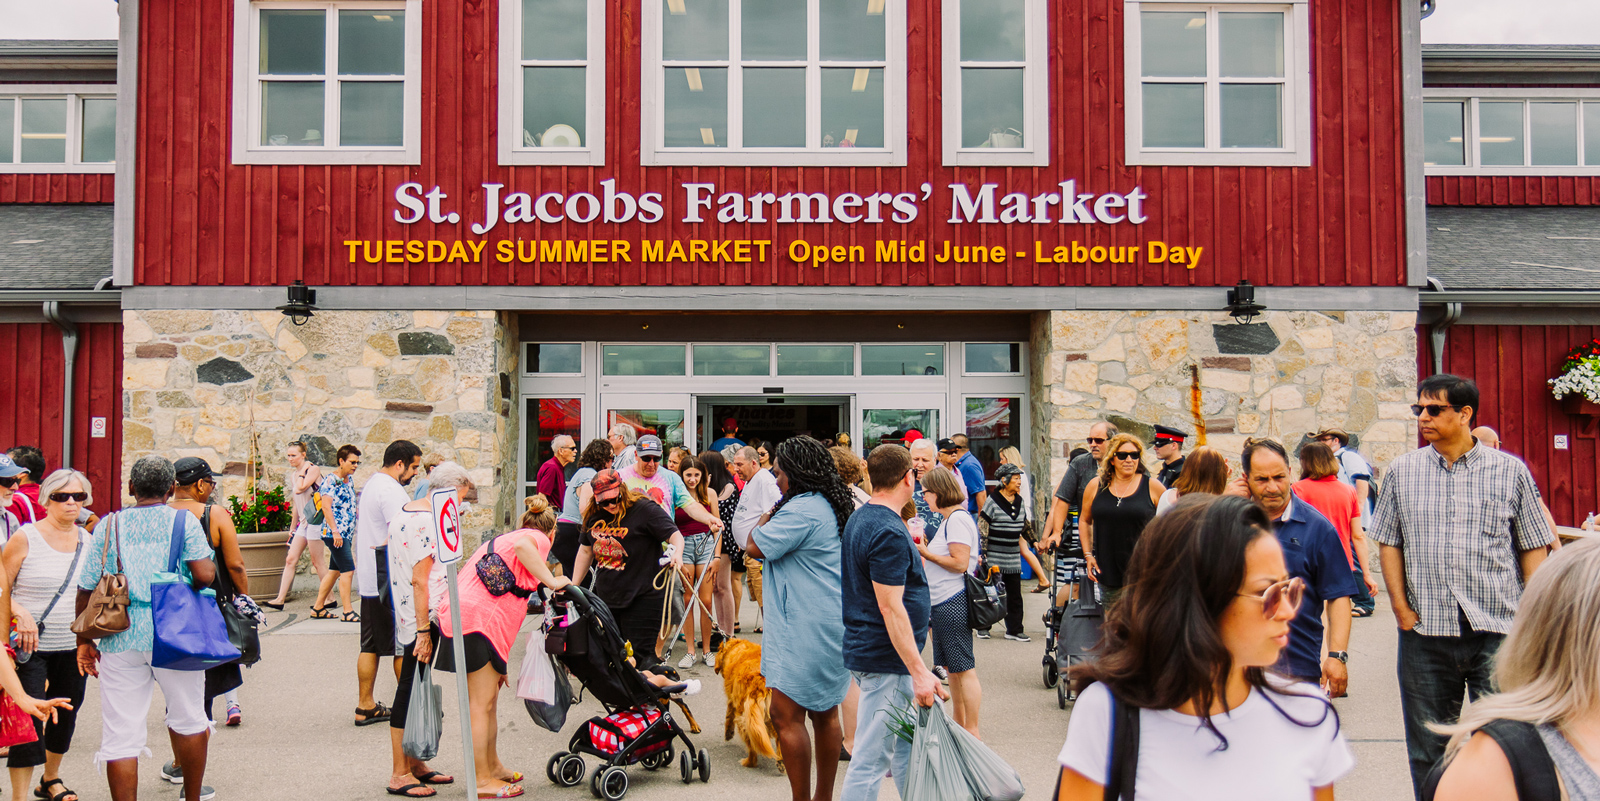 Visitors walking in front of the St. Jacobs Farmers' Market main building in St. Jacobs